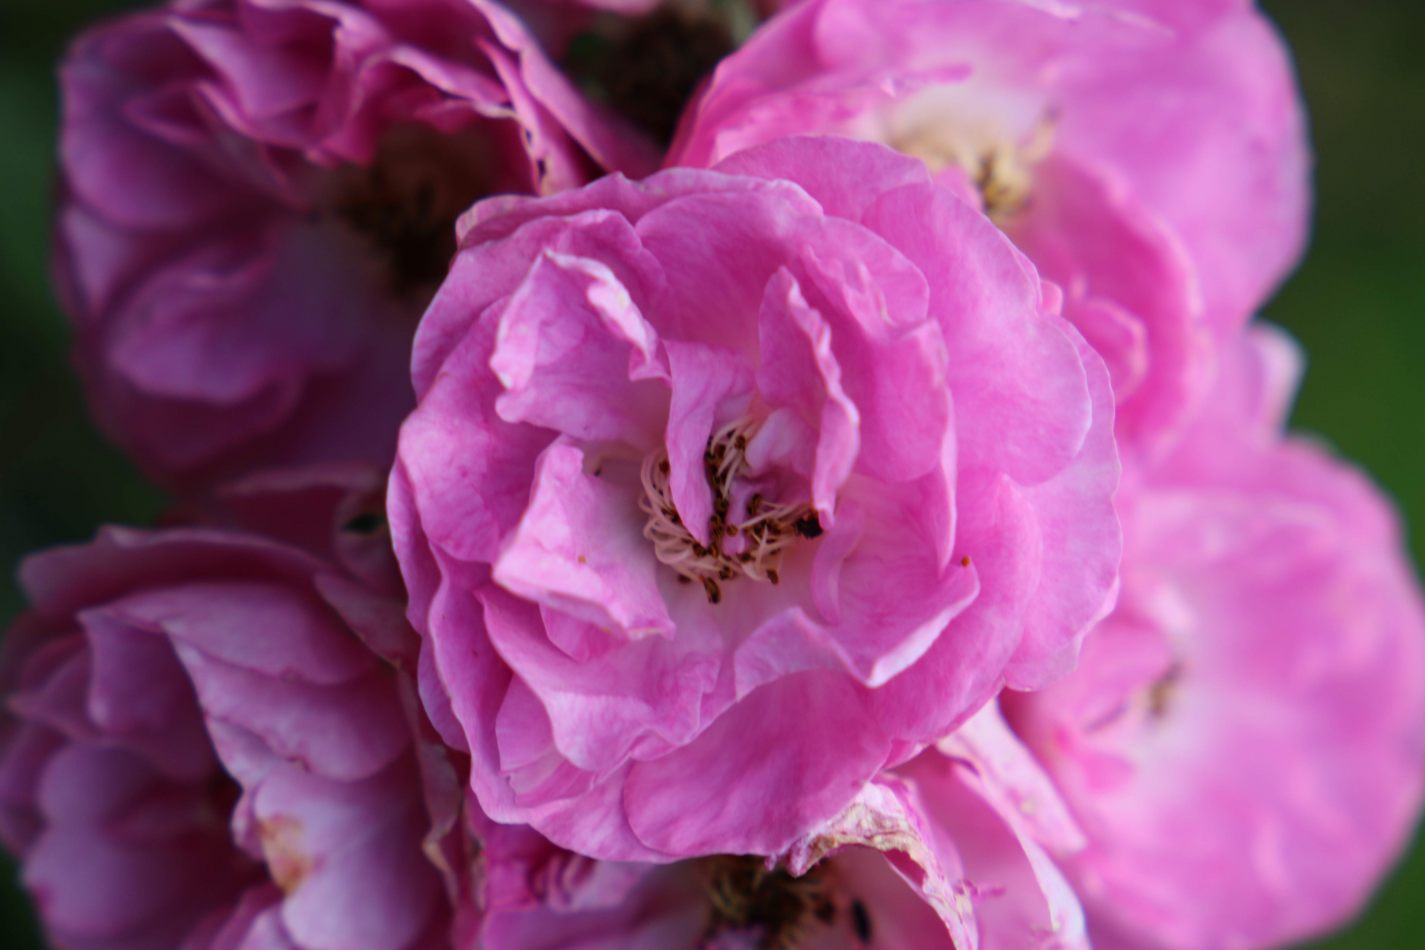 Anthony Ellis Photography: Luga Moja Haitoshi - Peonies